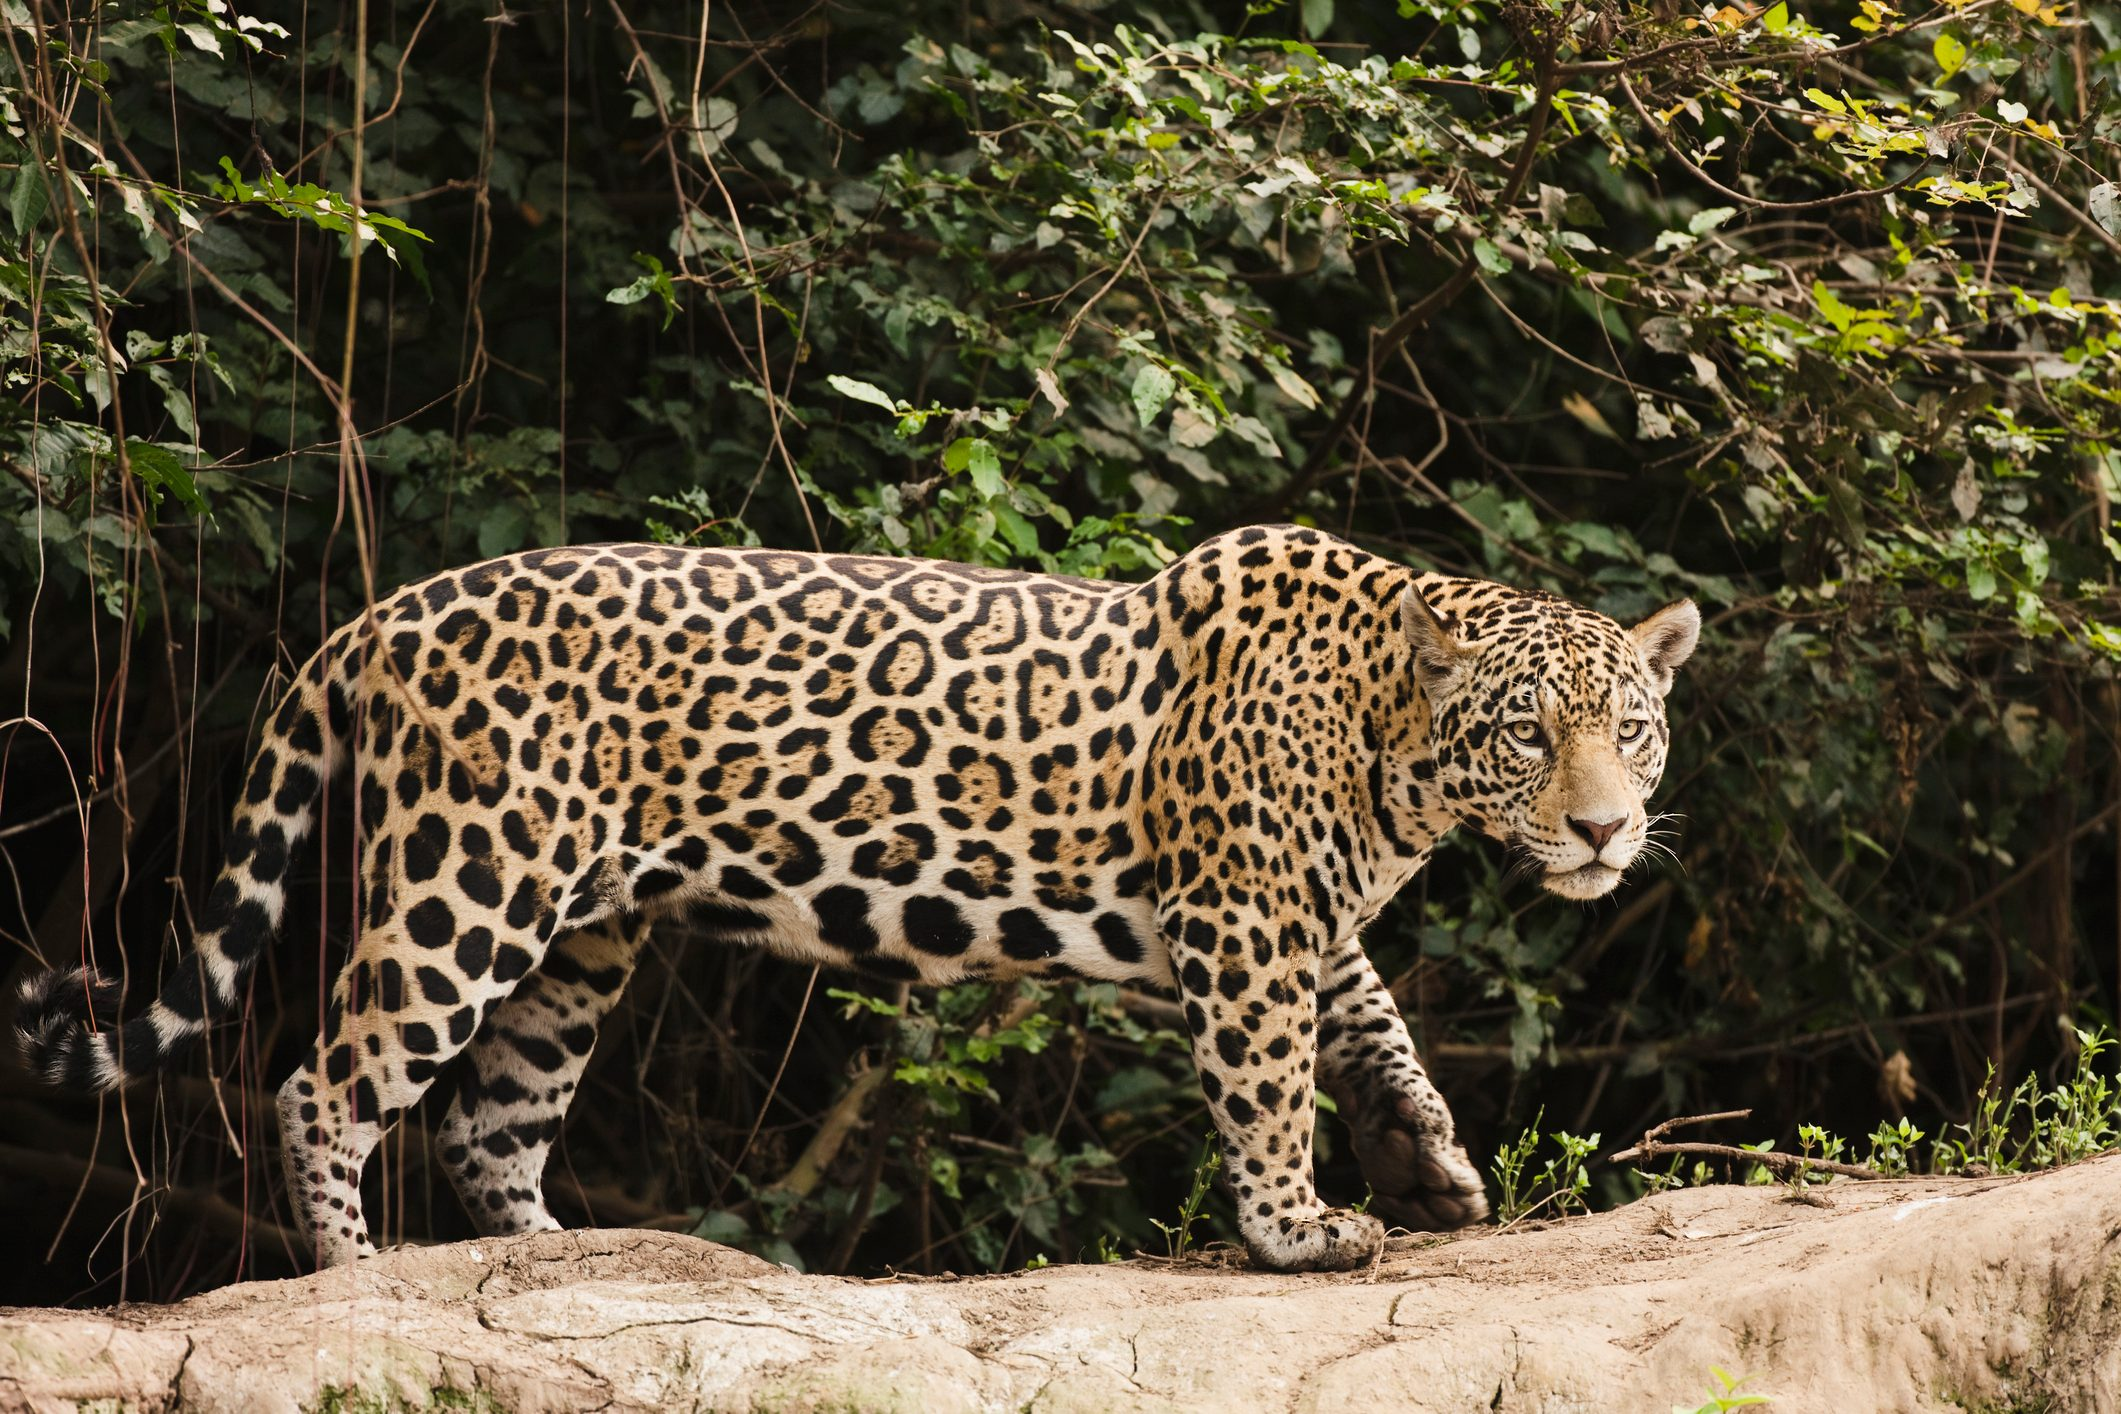 A female jaguar hunting in the early morning.